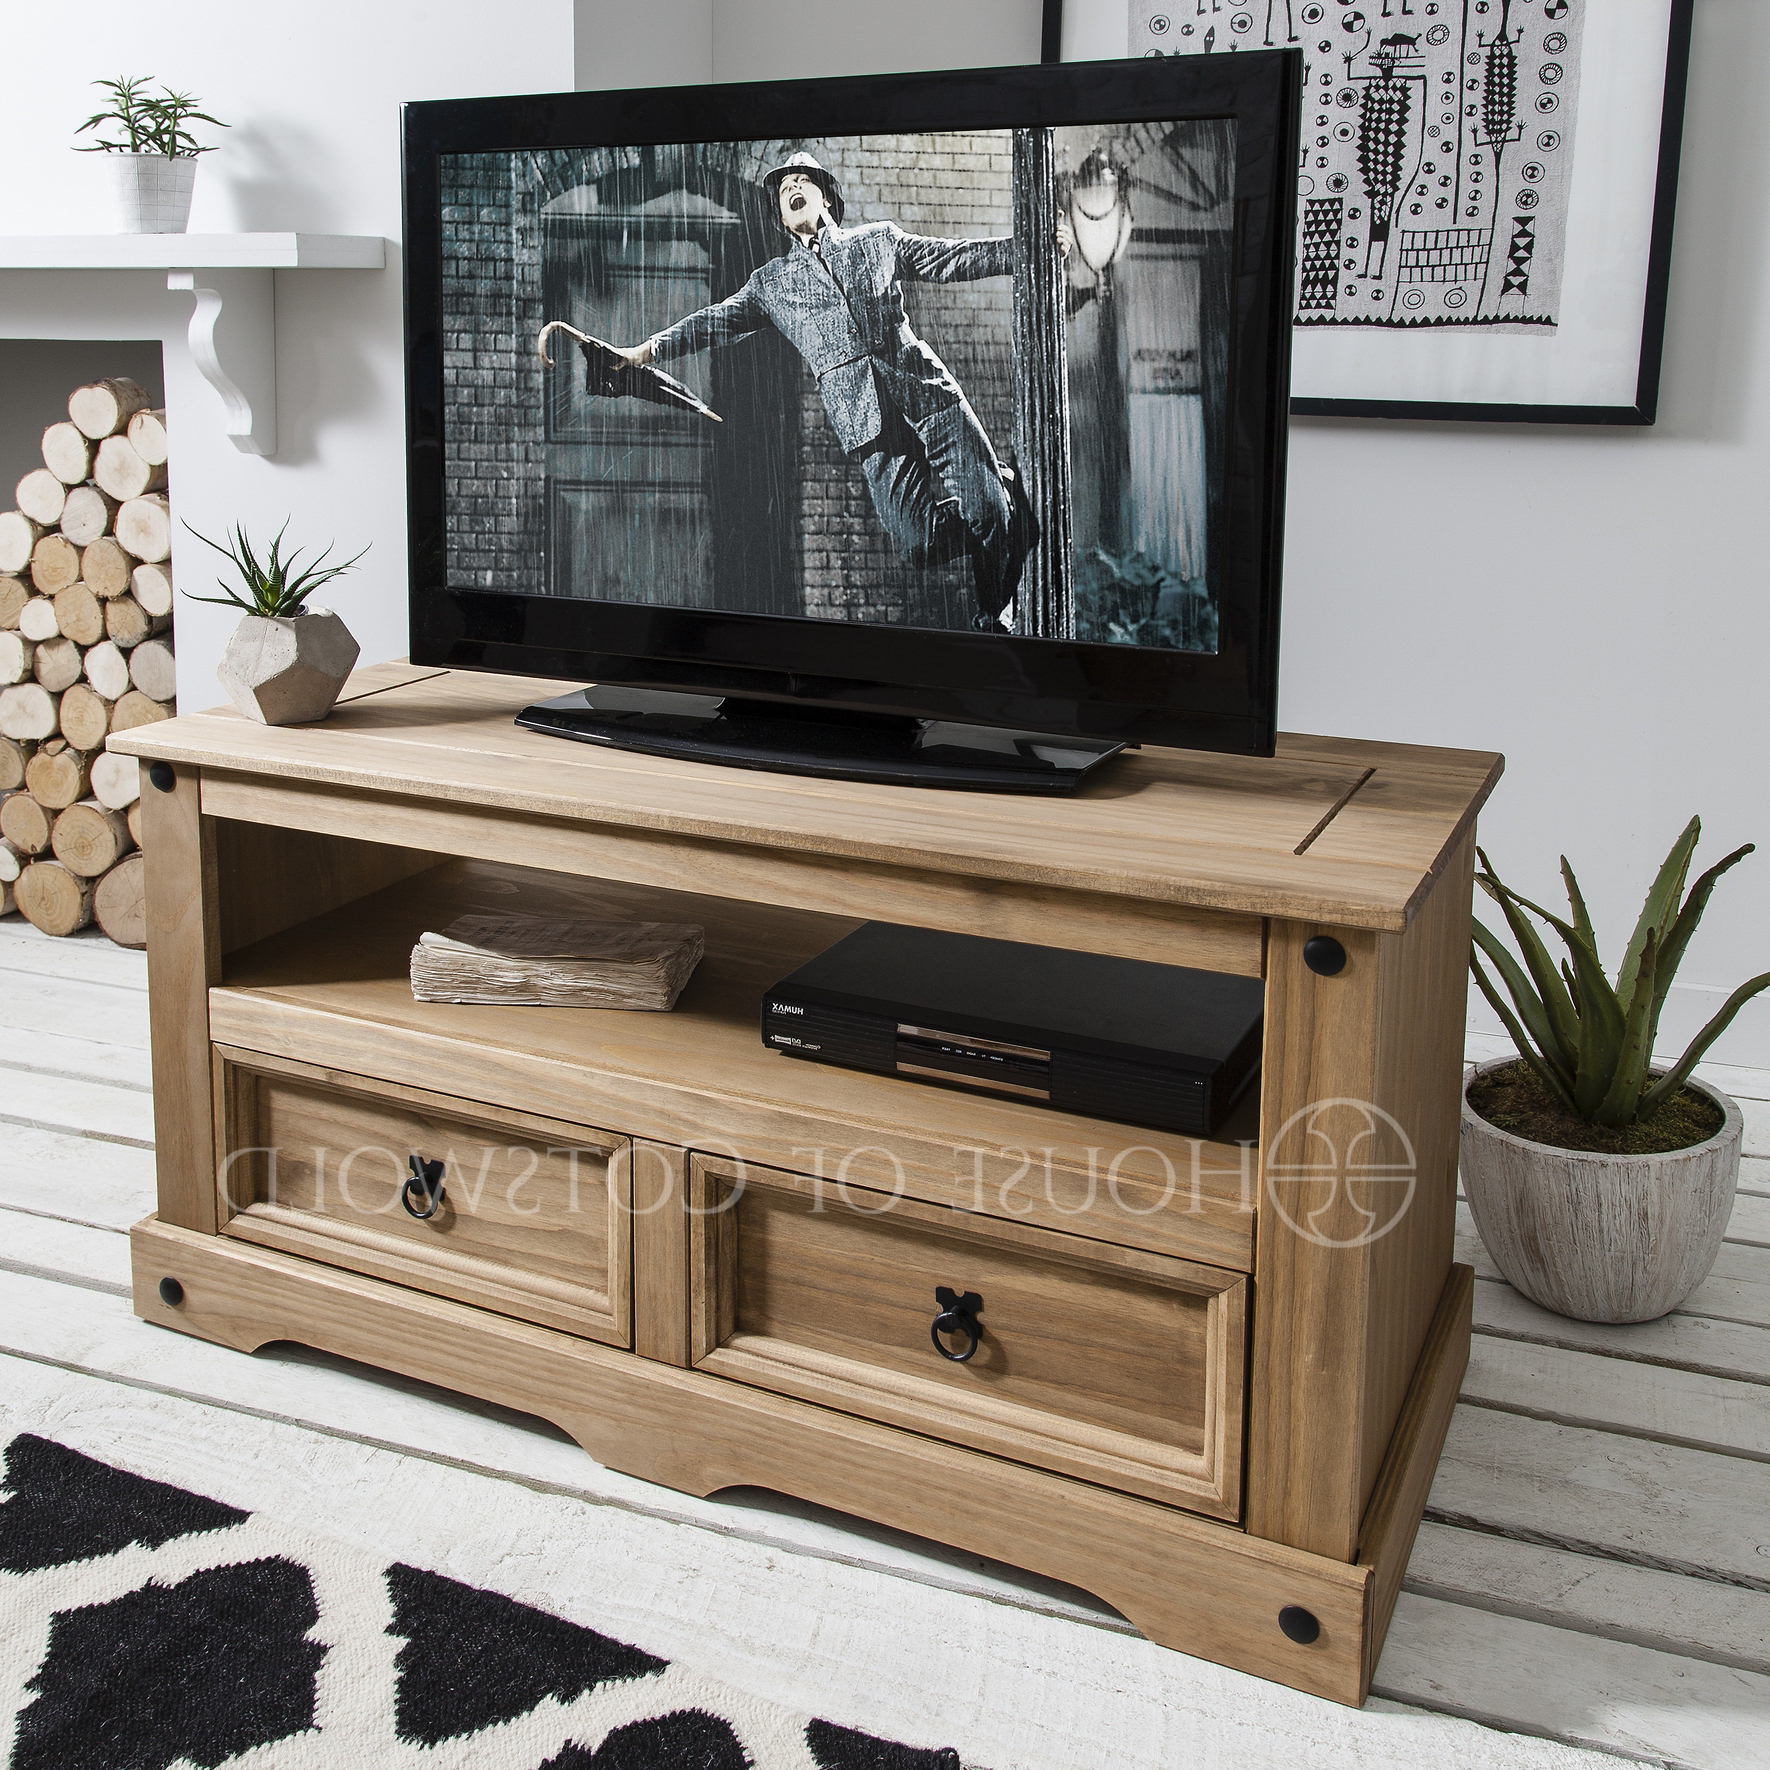 Rustic Pine Tv Cabinets Throughout 2017 Home Design & Gardening: Absorbing Rustic Pine Tv Stand Like Wooden (Gallery 5 of 20)